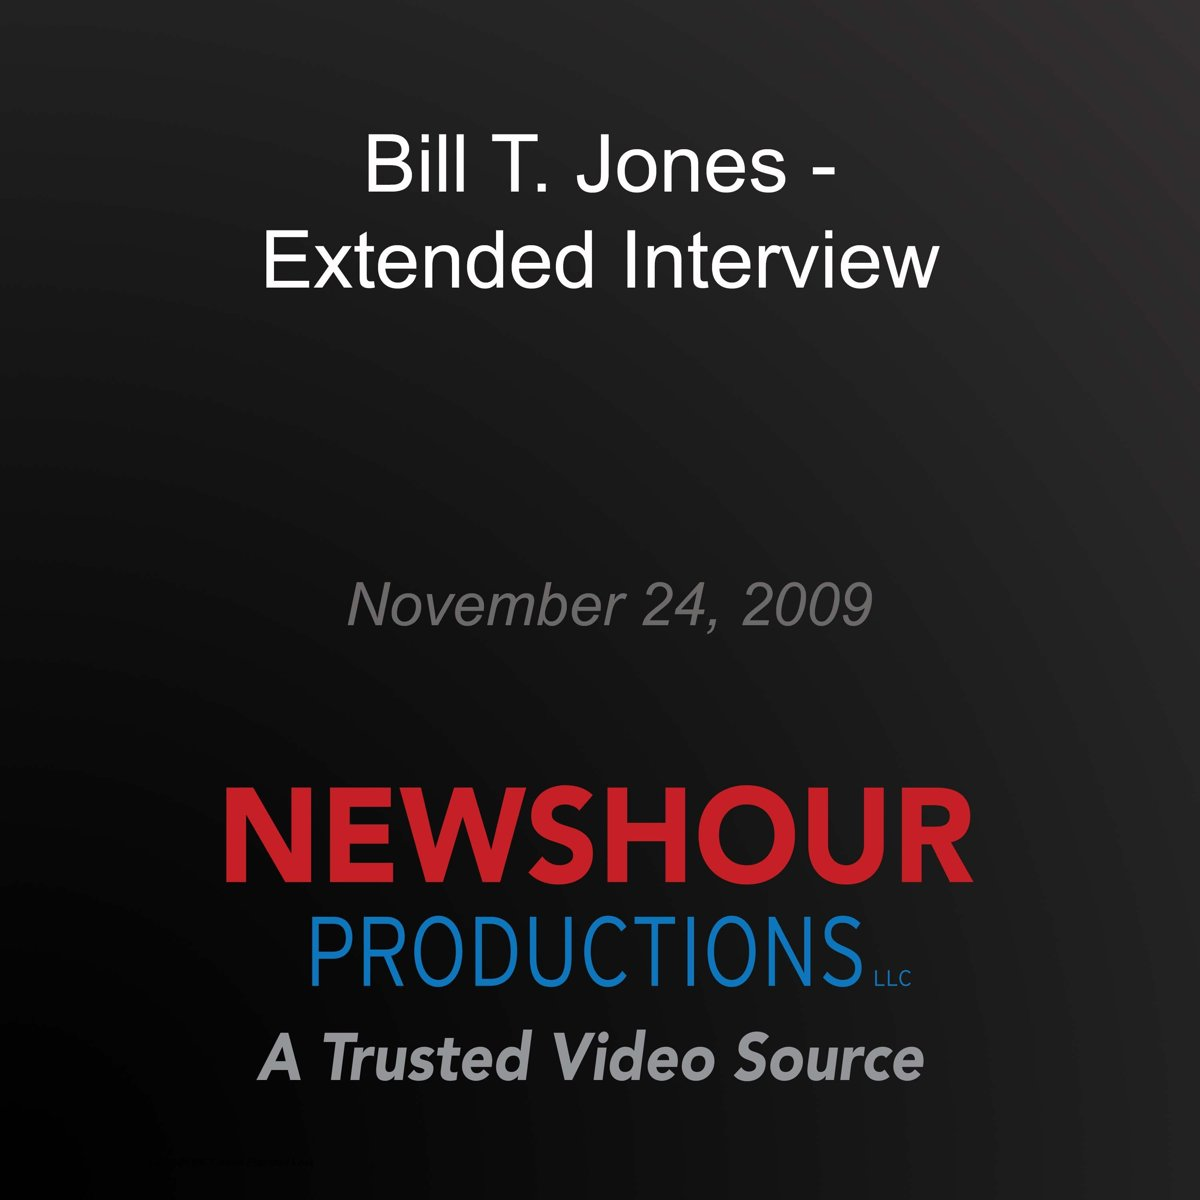 Bill T. Jones - Extended Interview